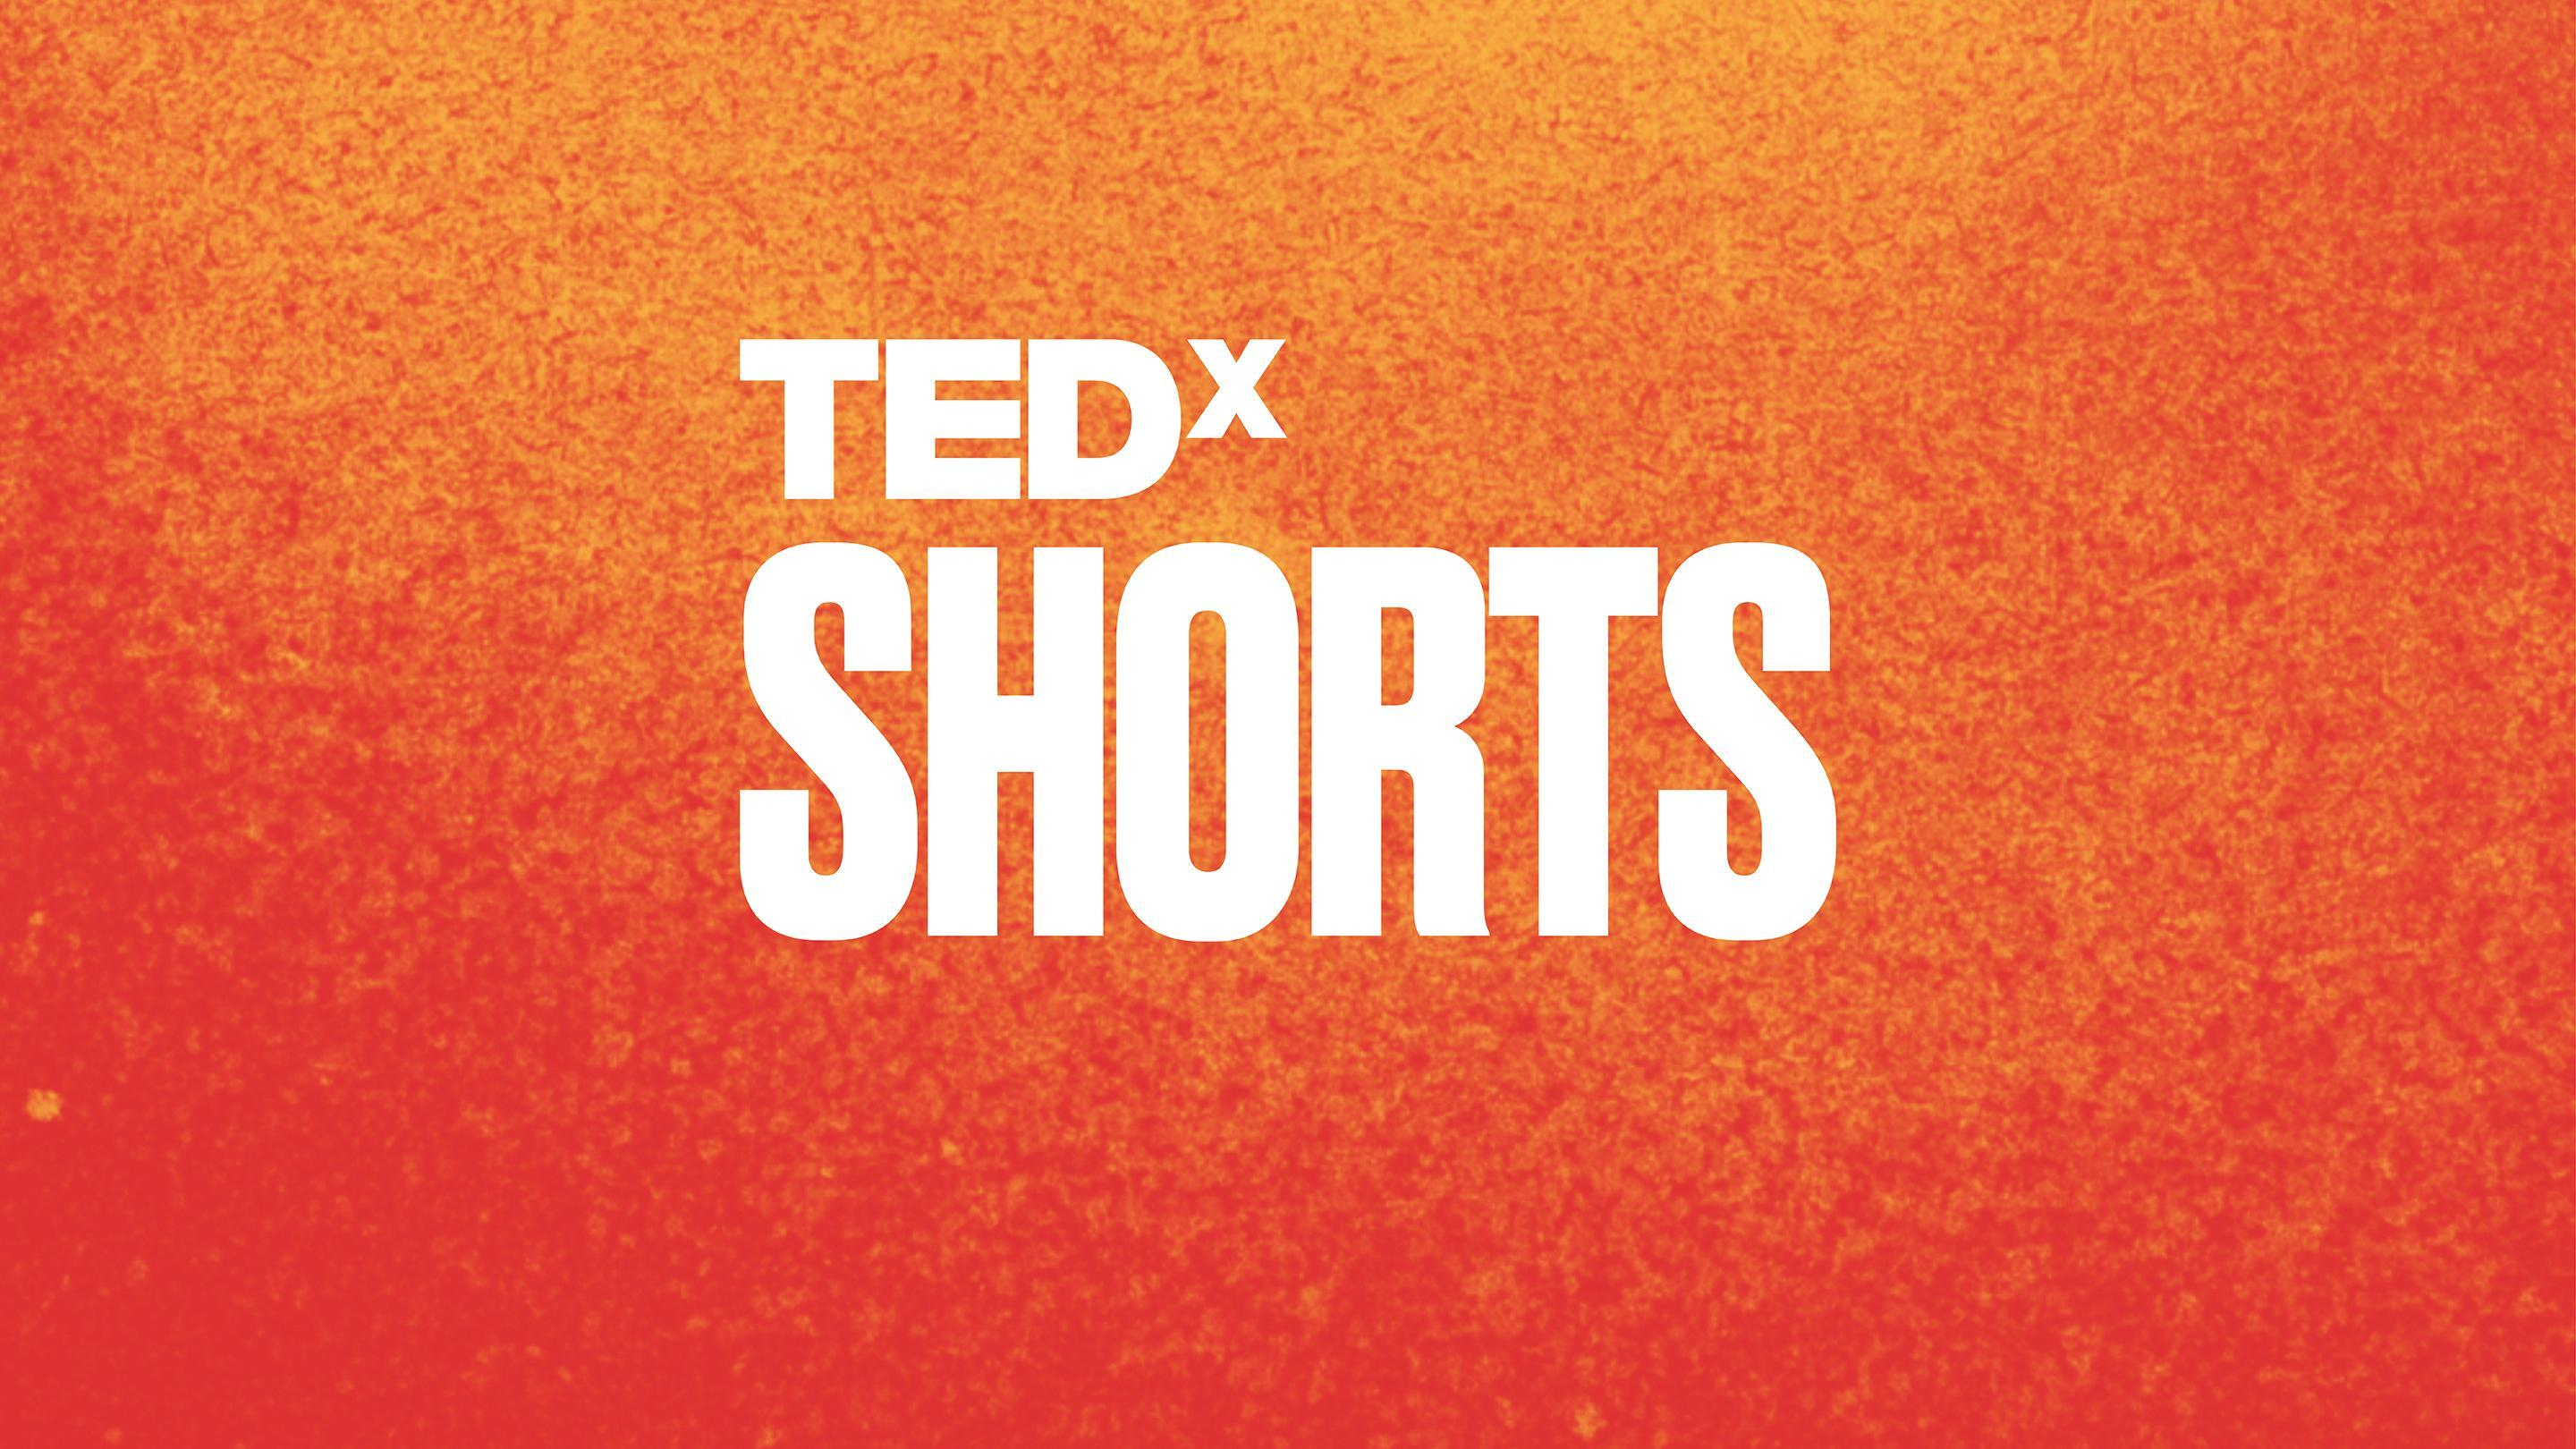 A simple strategy to reclaim your time | TEDx SHORTS